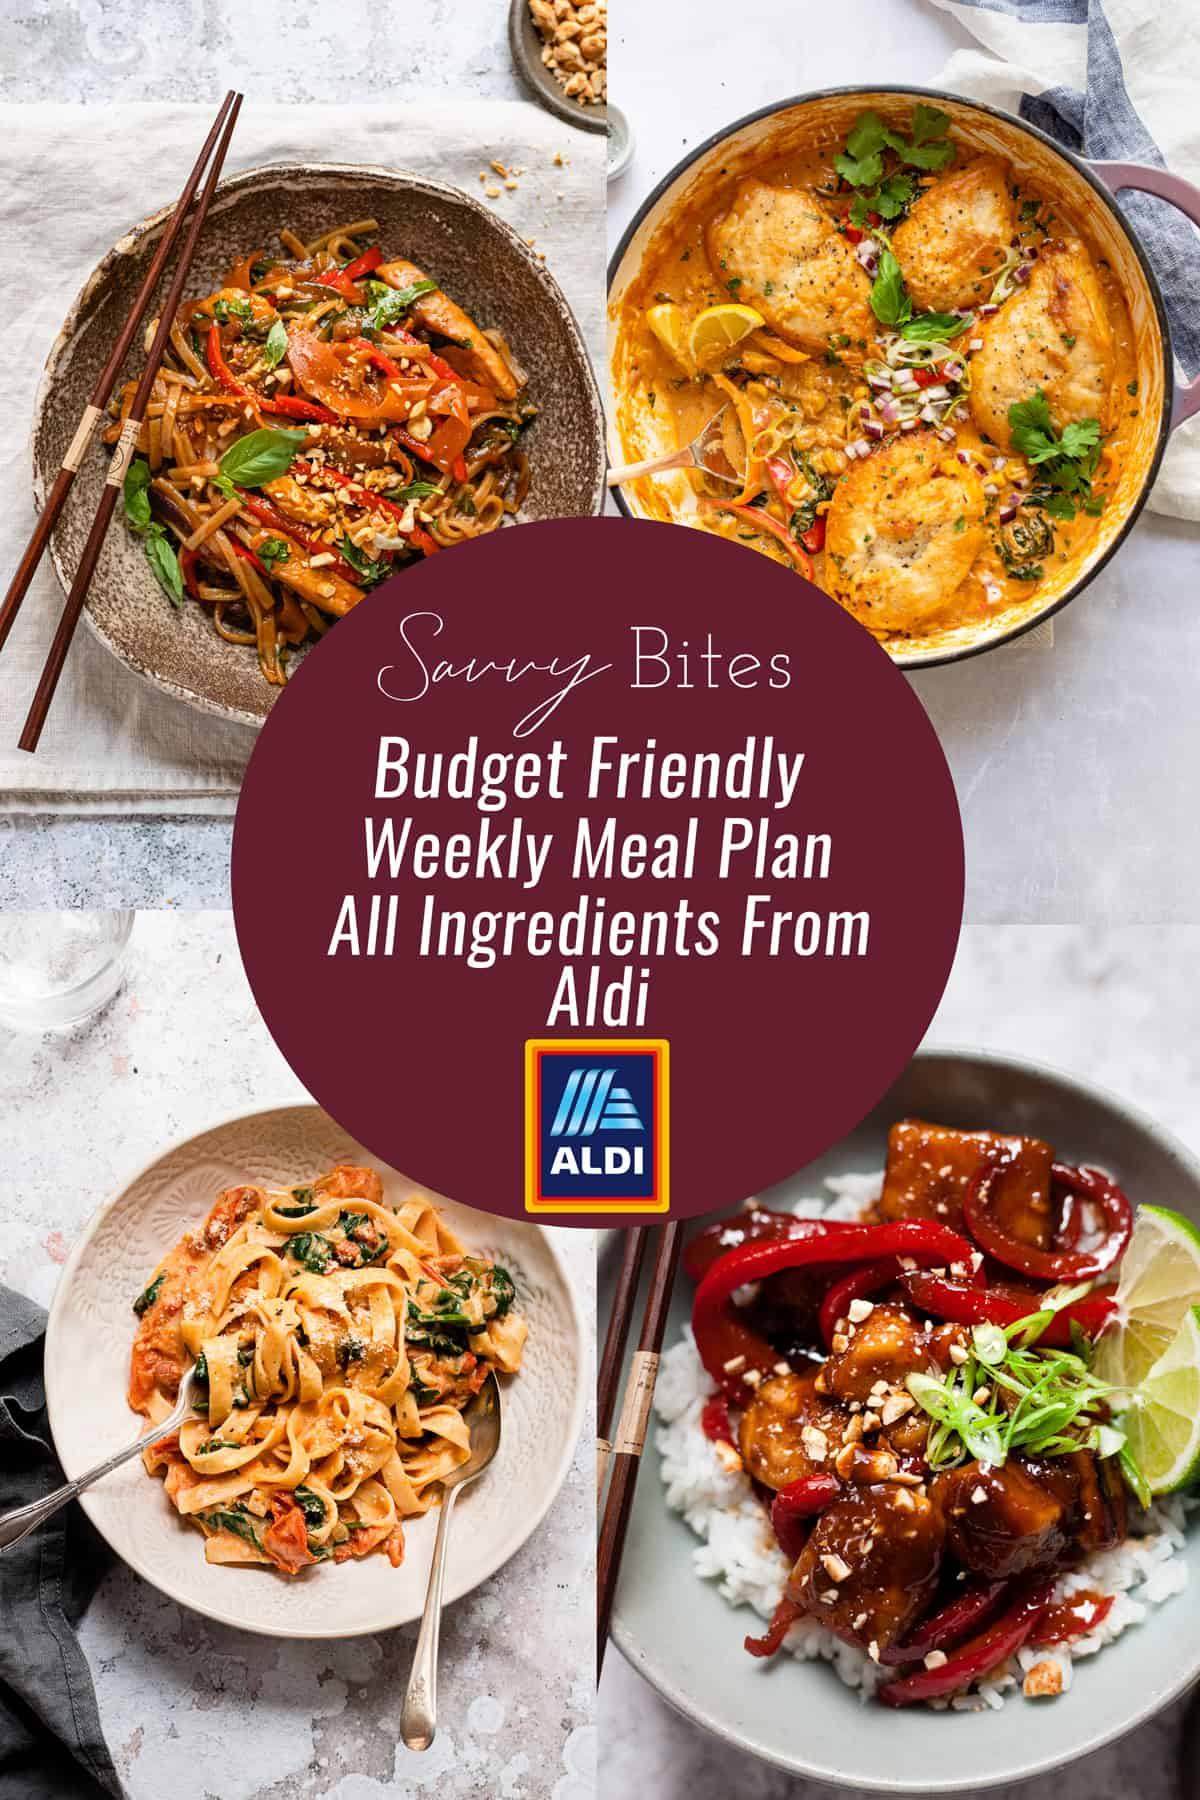 Aldi meal plan collage for weekly budget meal plan.